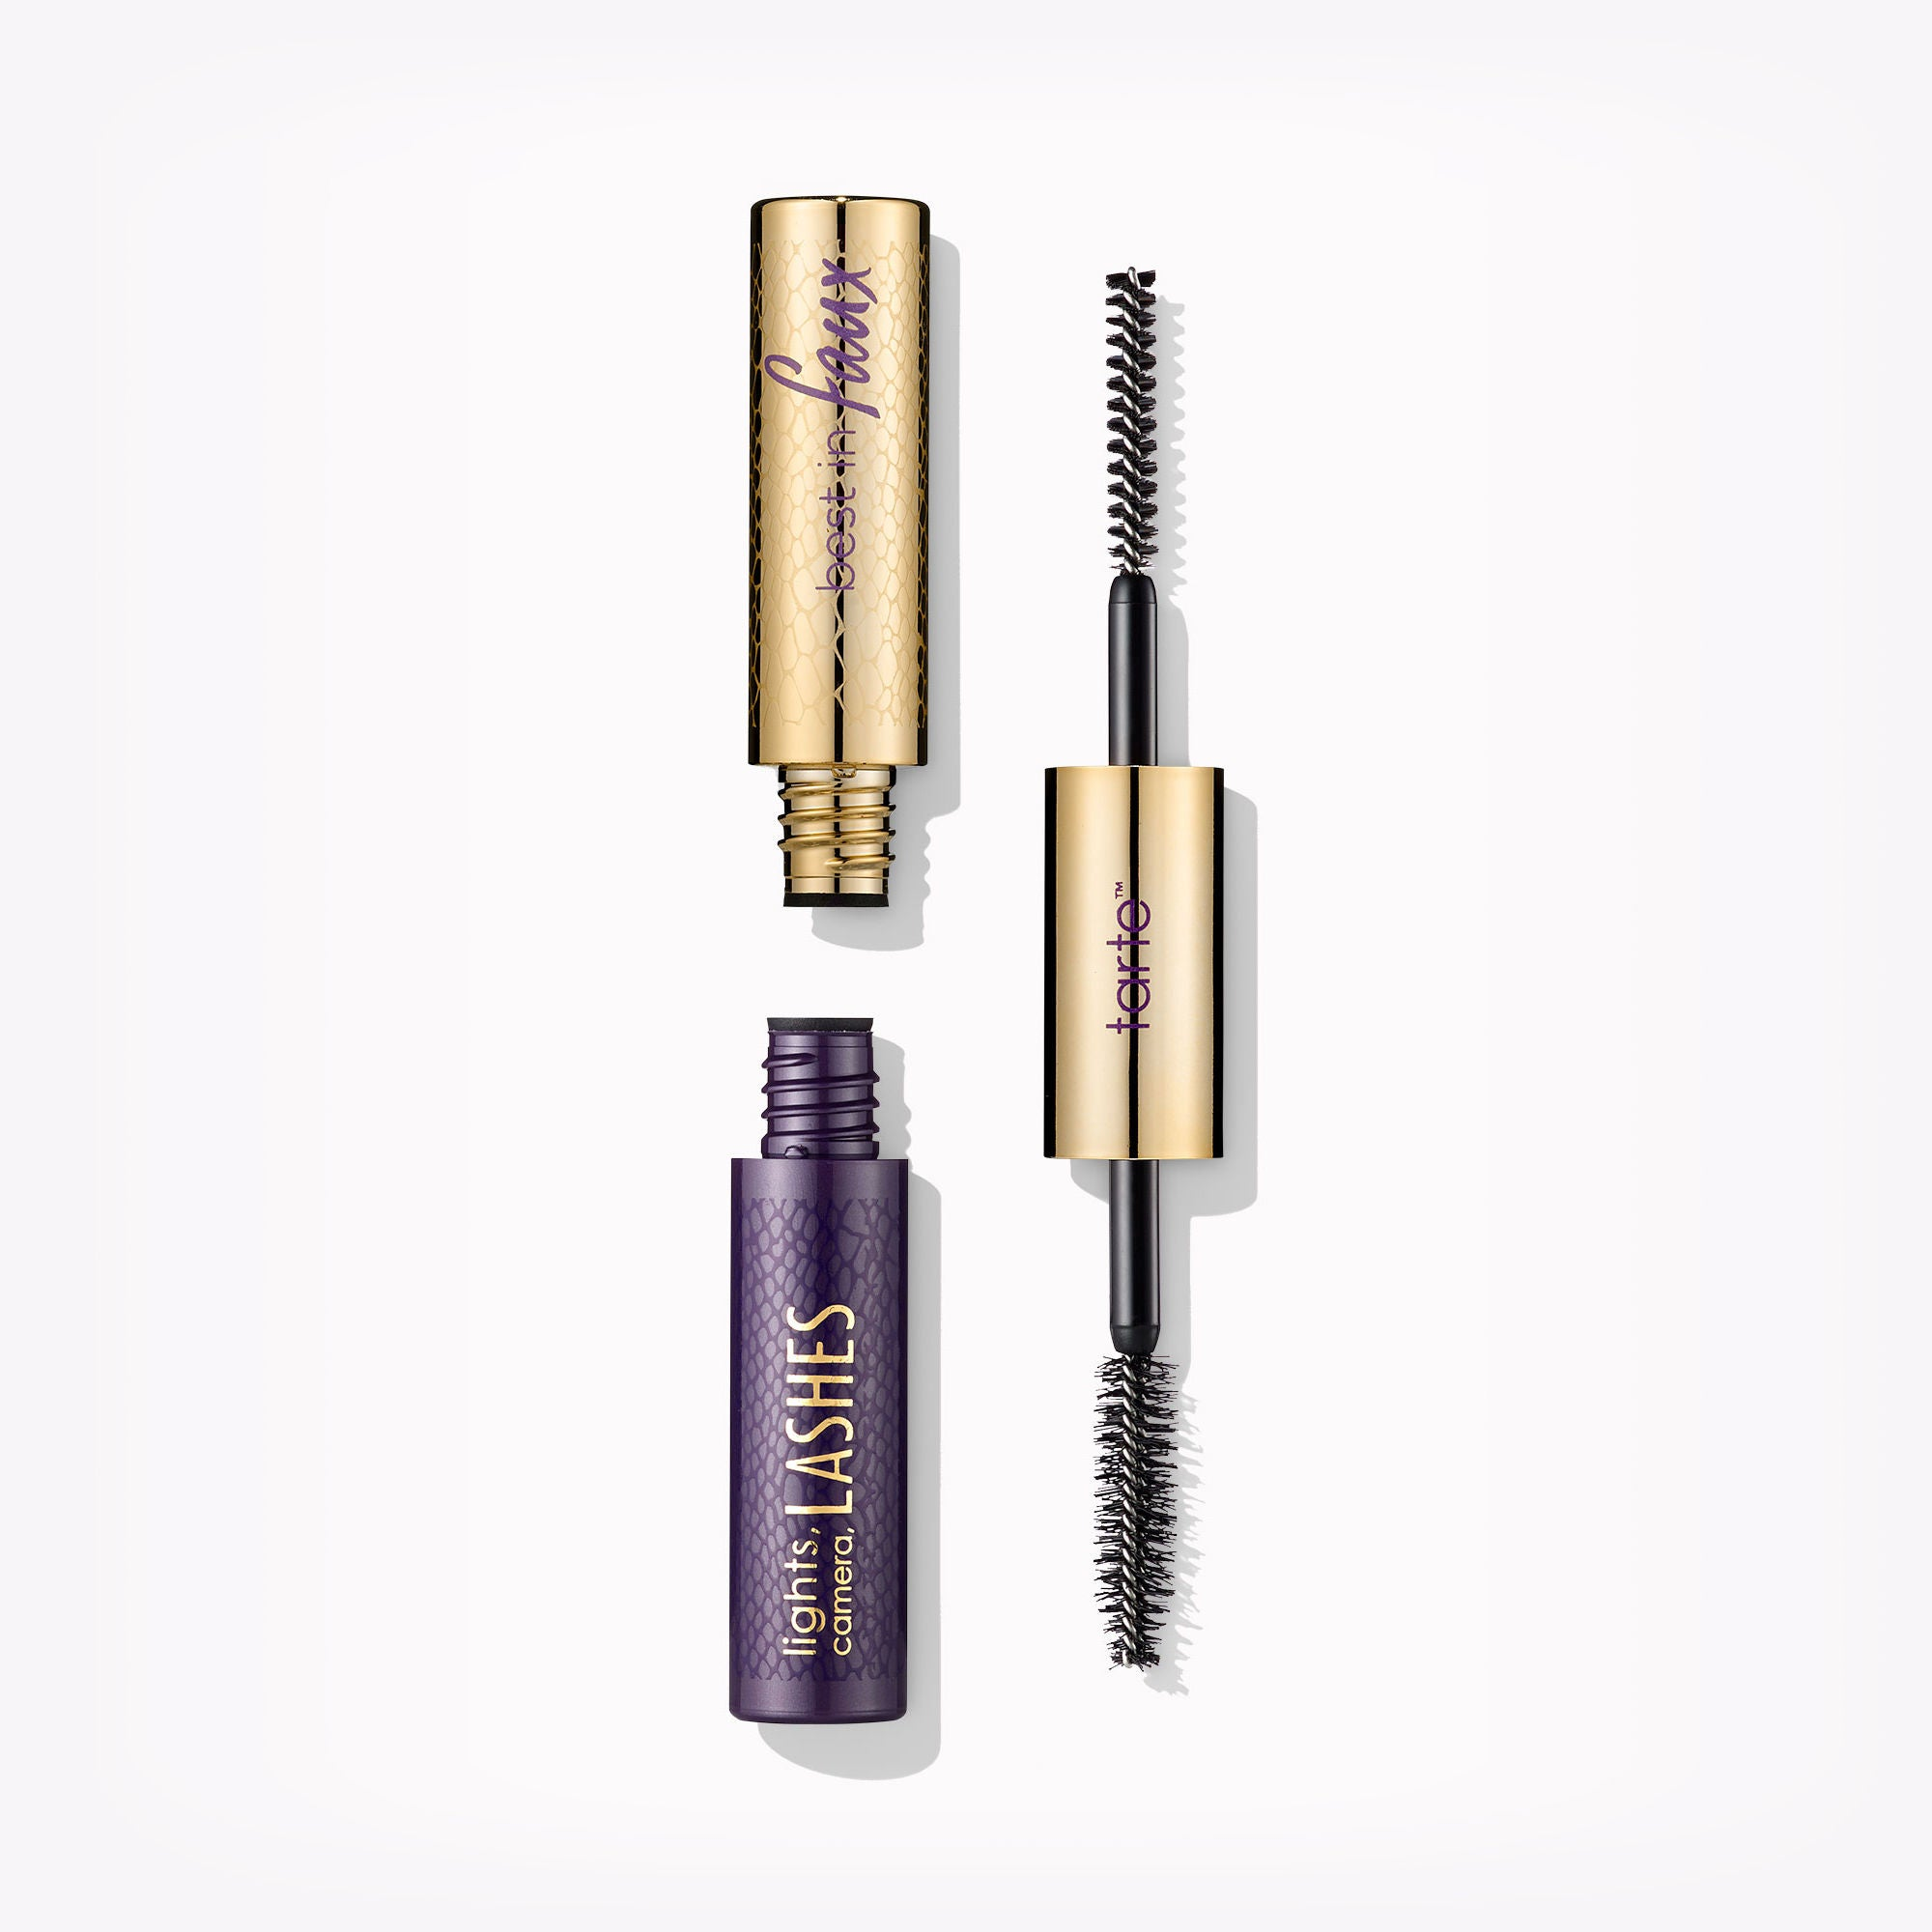 Tarte Tarteist Lights, Camera, Lashes Double-Ended Lash Fibres & 4-in-1 Mascara